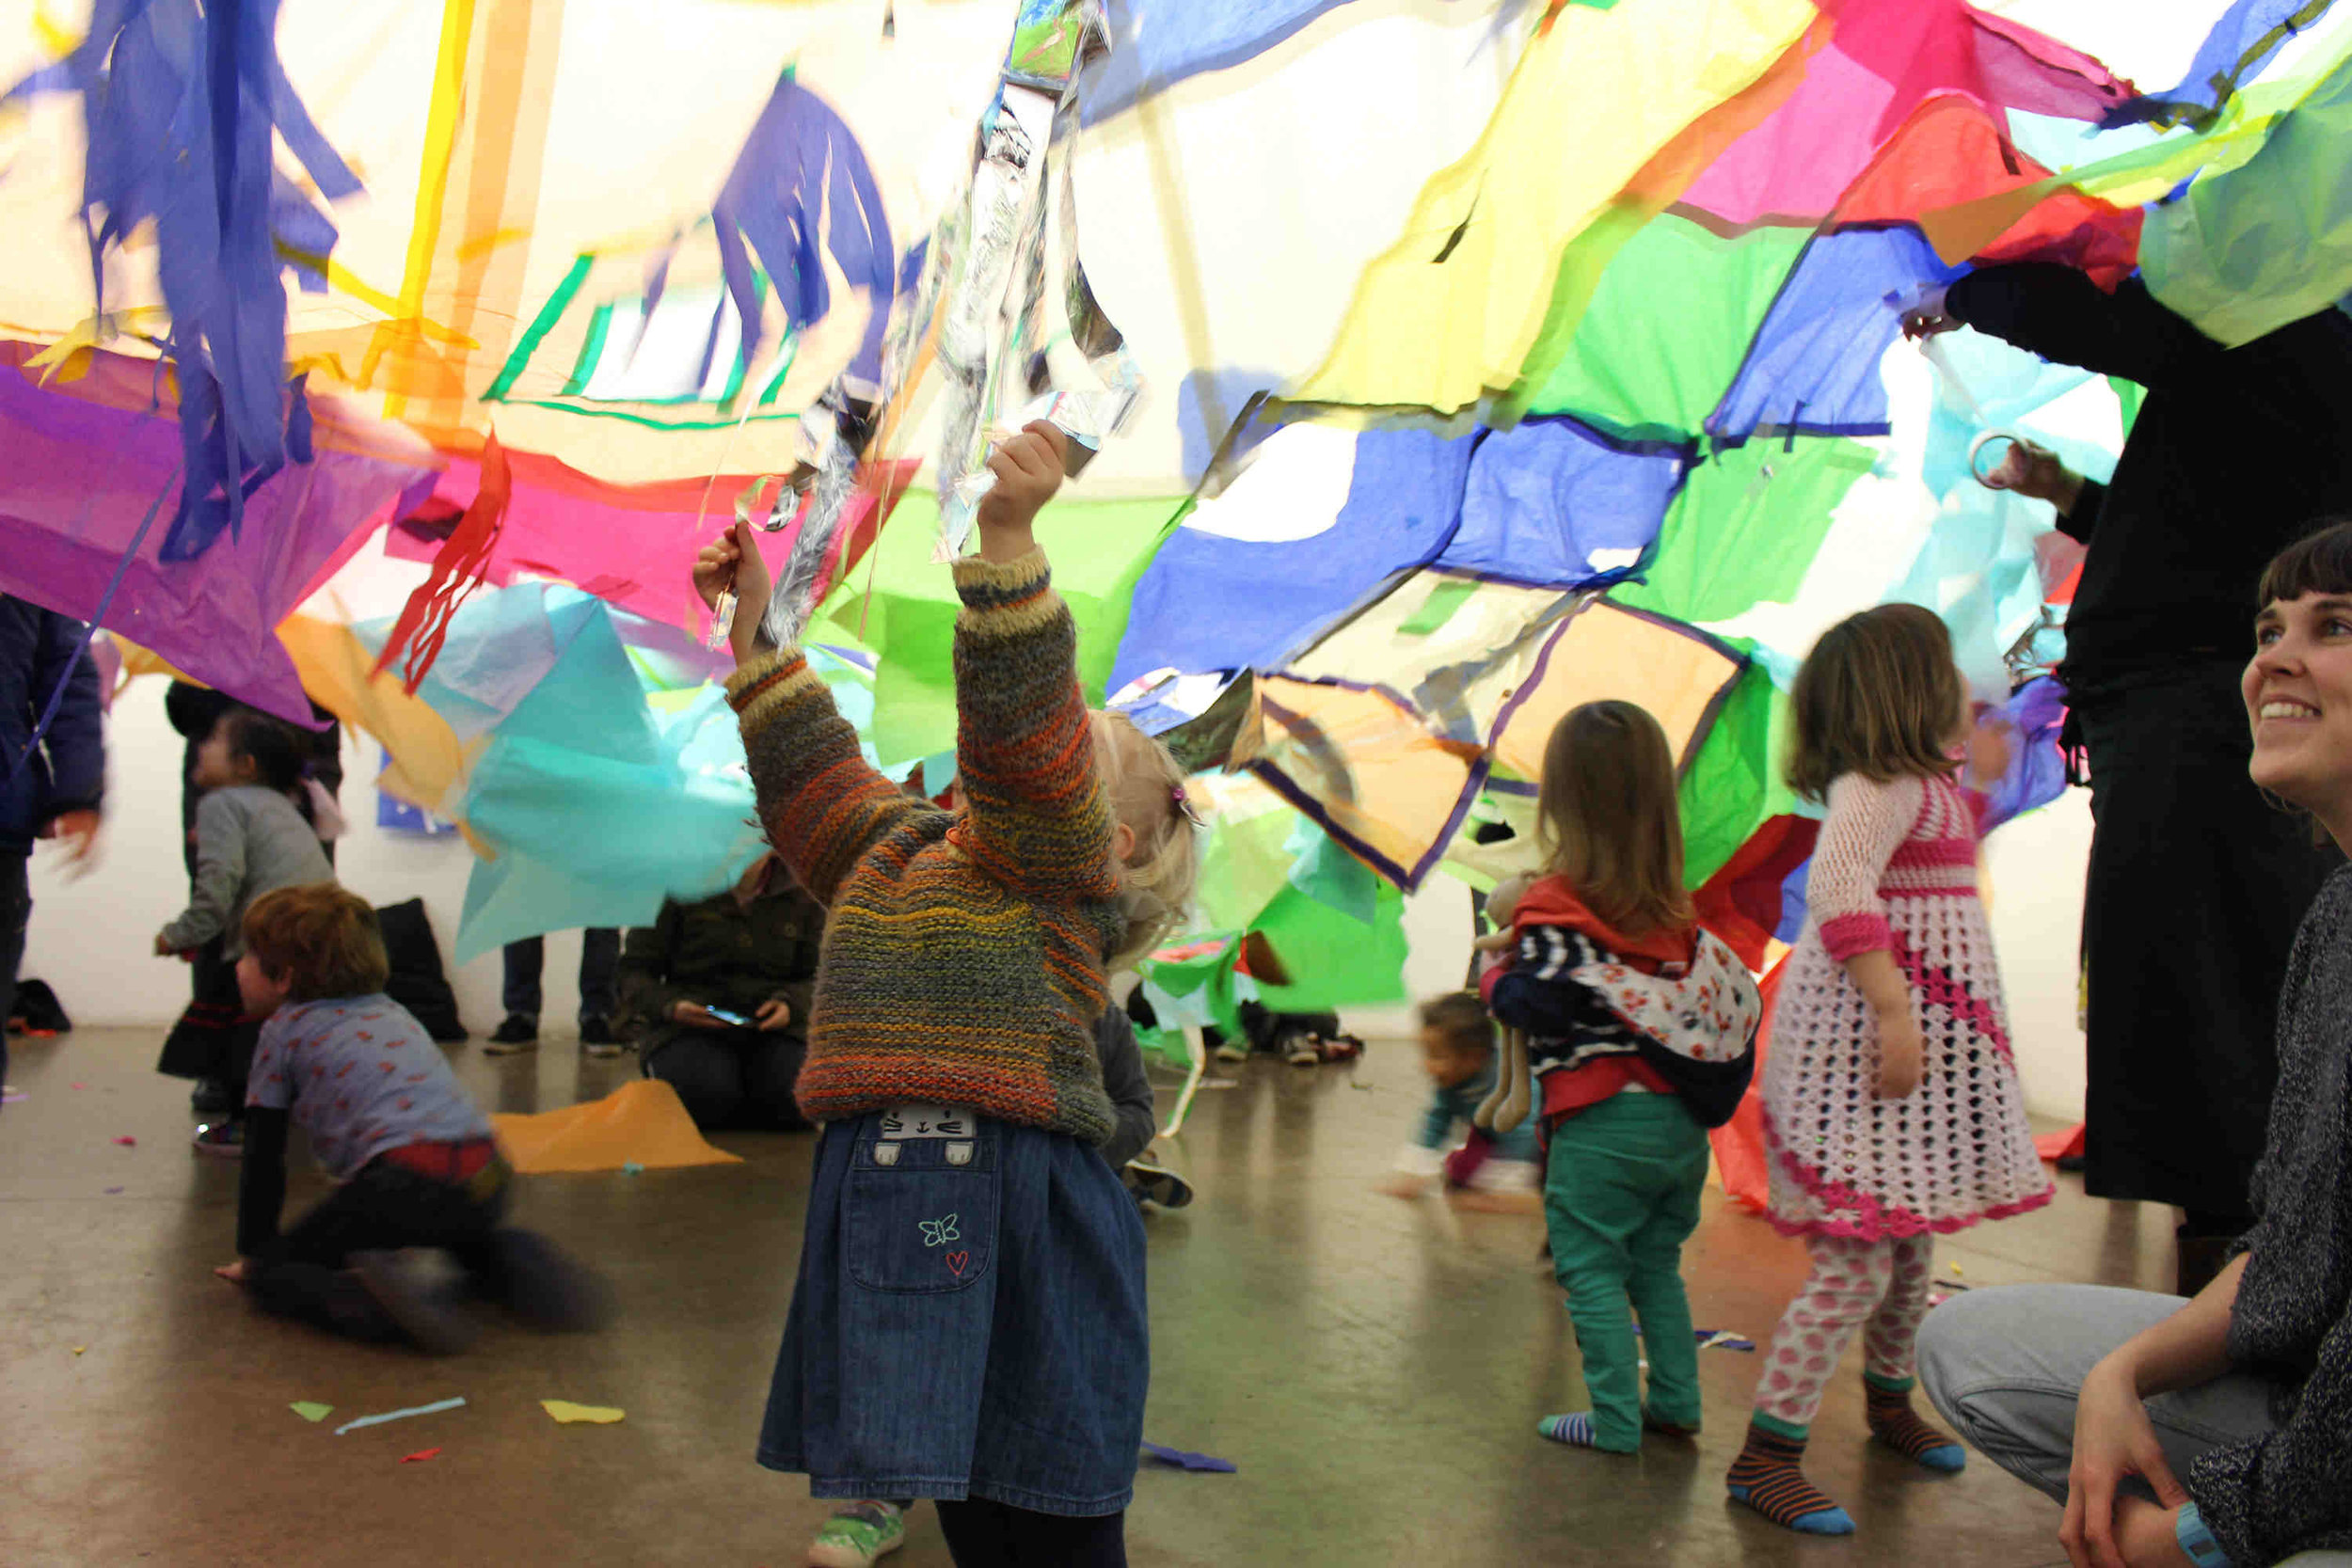 Sunday Spot at the South London Gallery, has  free hands-on activities led by artists for children aged 3-12 years.  Sunday 2 - 4pm. For more information go to the website  southlondongallery.org